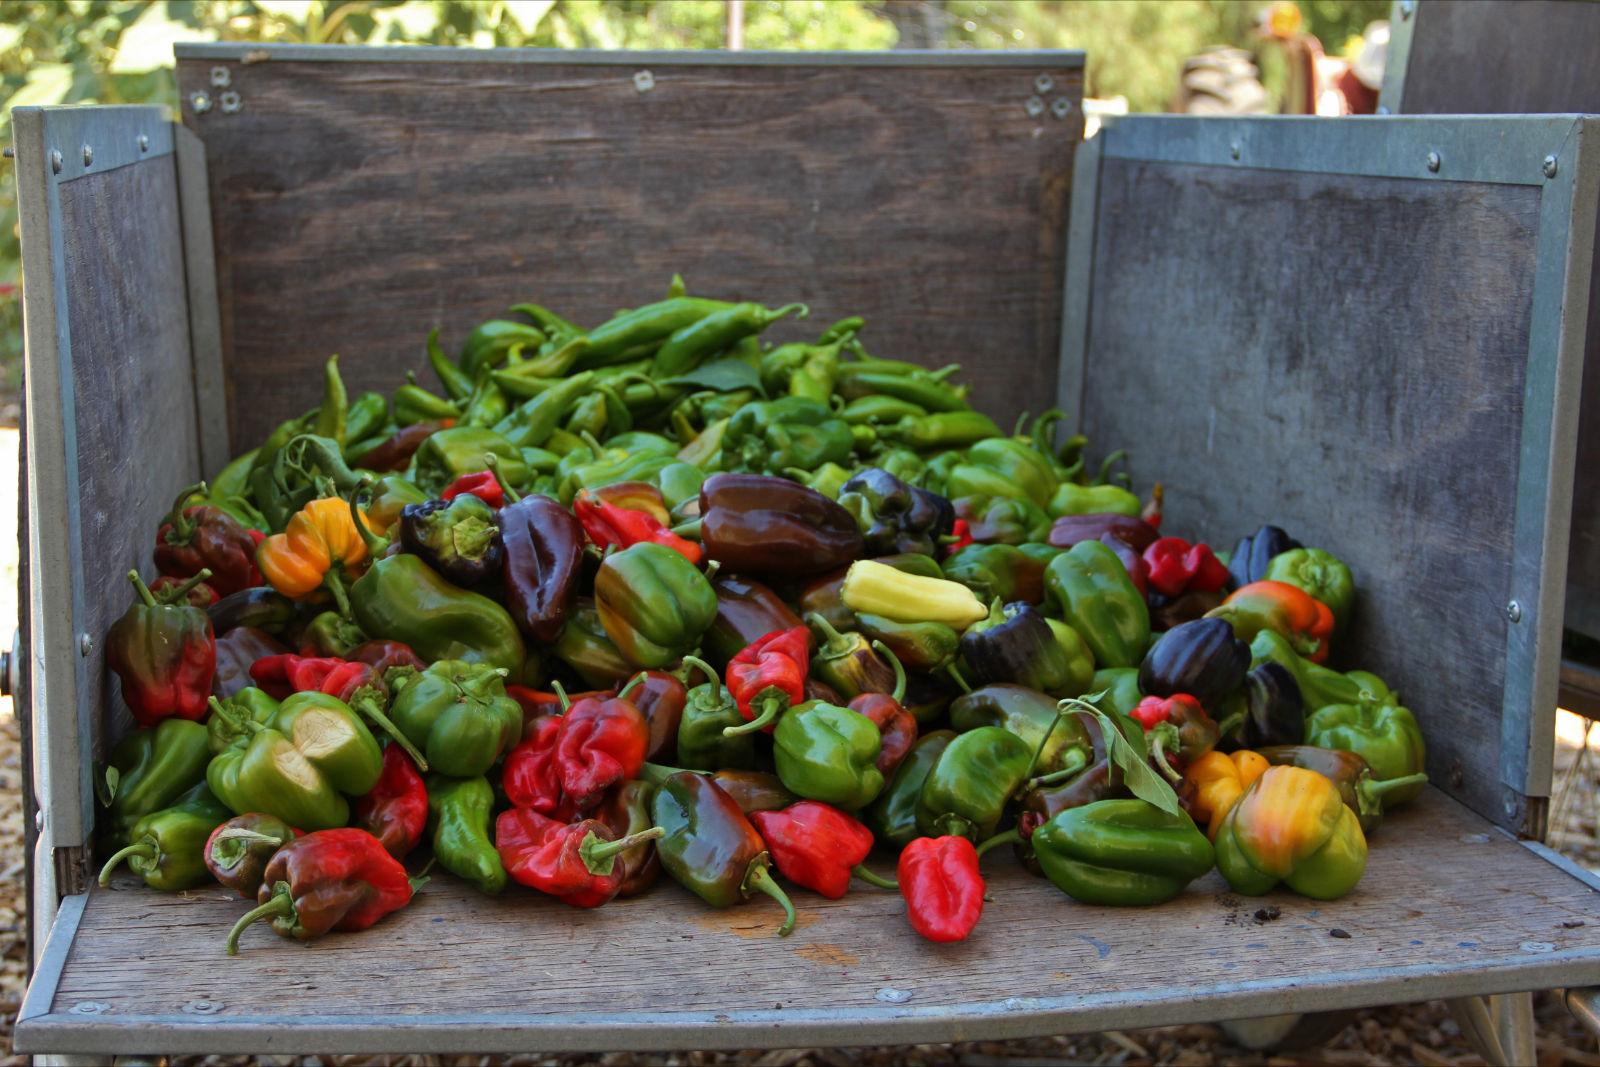 A bounty of multicolored bell peppers freshly harvested from the farm.